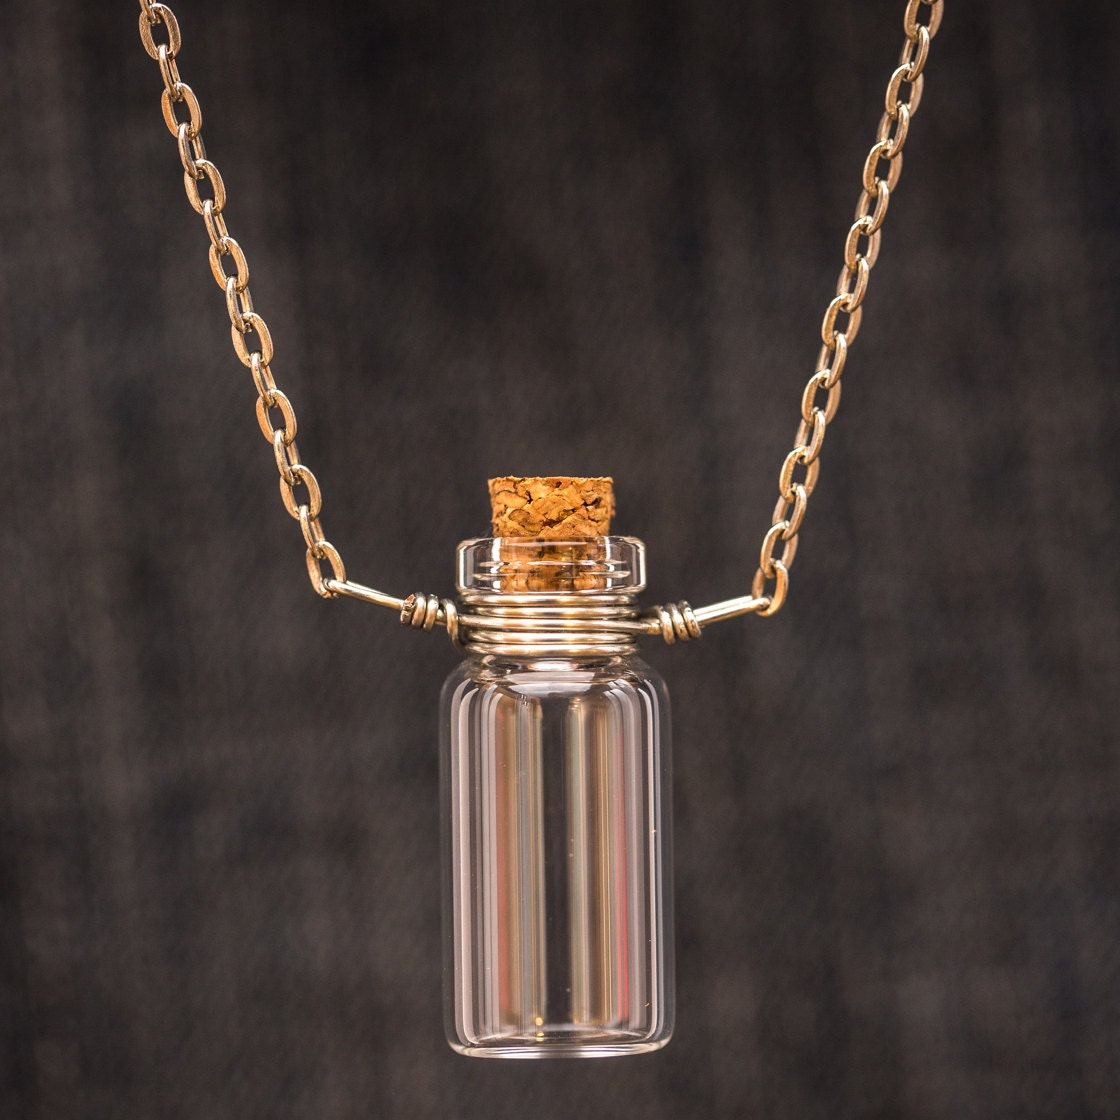 free shipping empty glass vial necklace diy jewelry fill